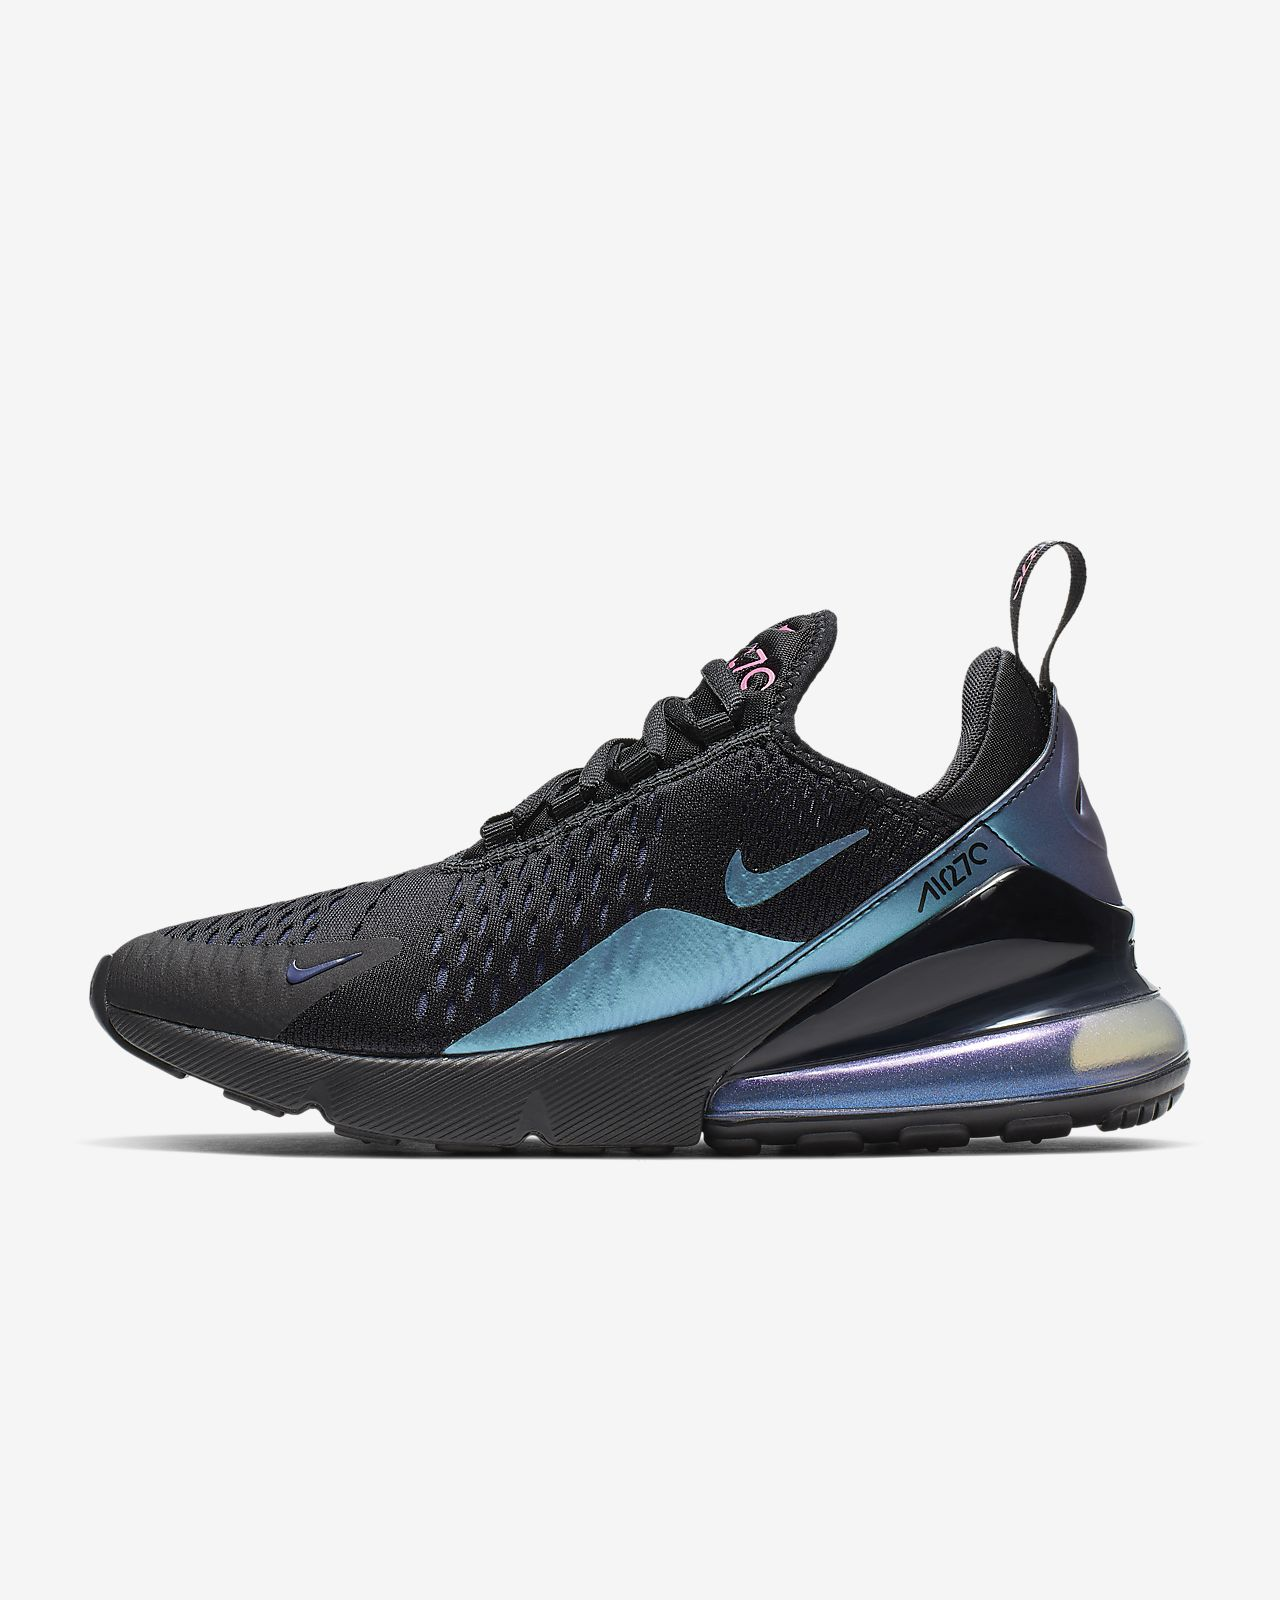 e8be17b5eaee7 Nike Air Max 270 Women s Shoe. Nike.com GB